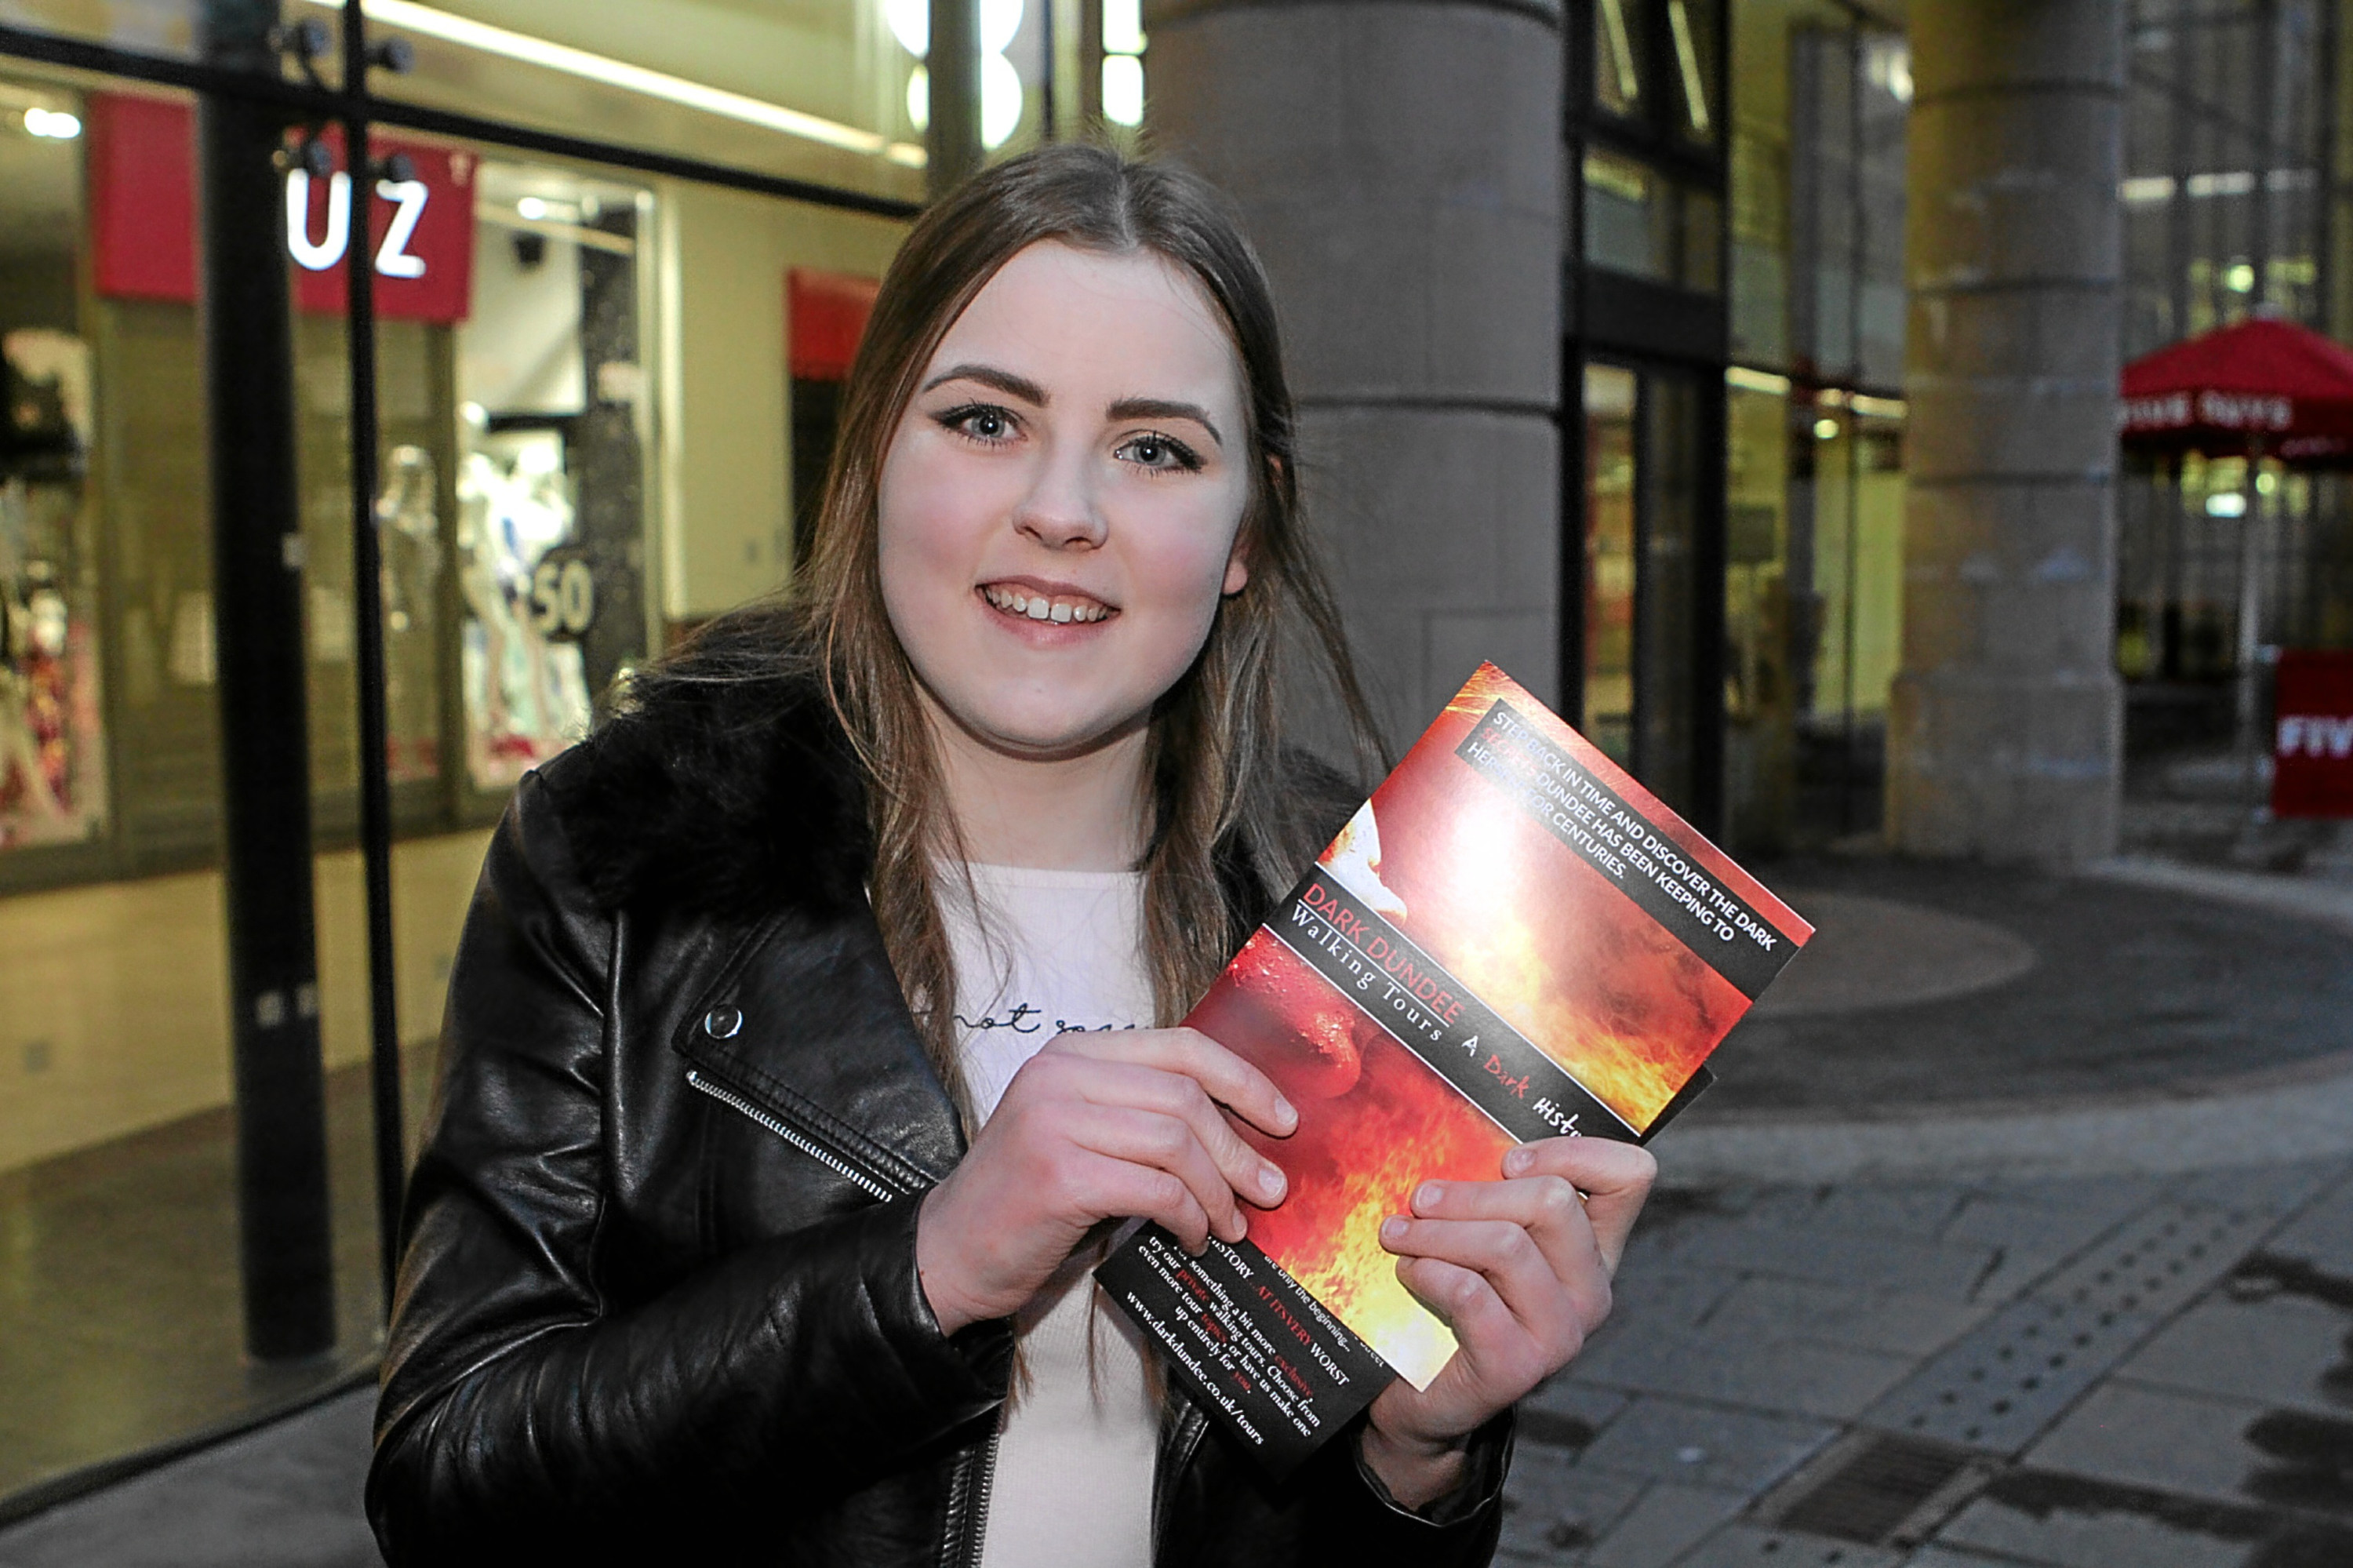 Tour-goer Bethany Morrison with her programme.